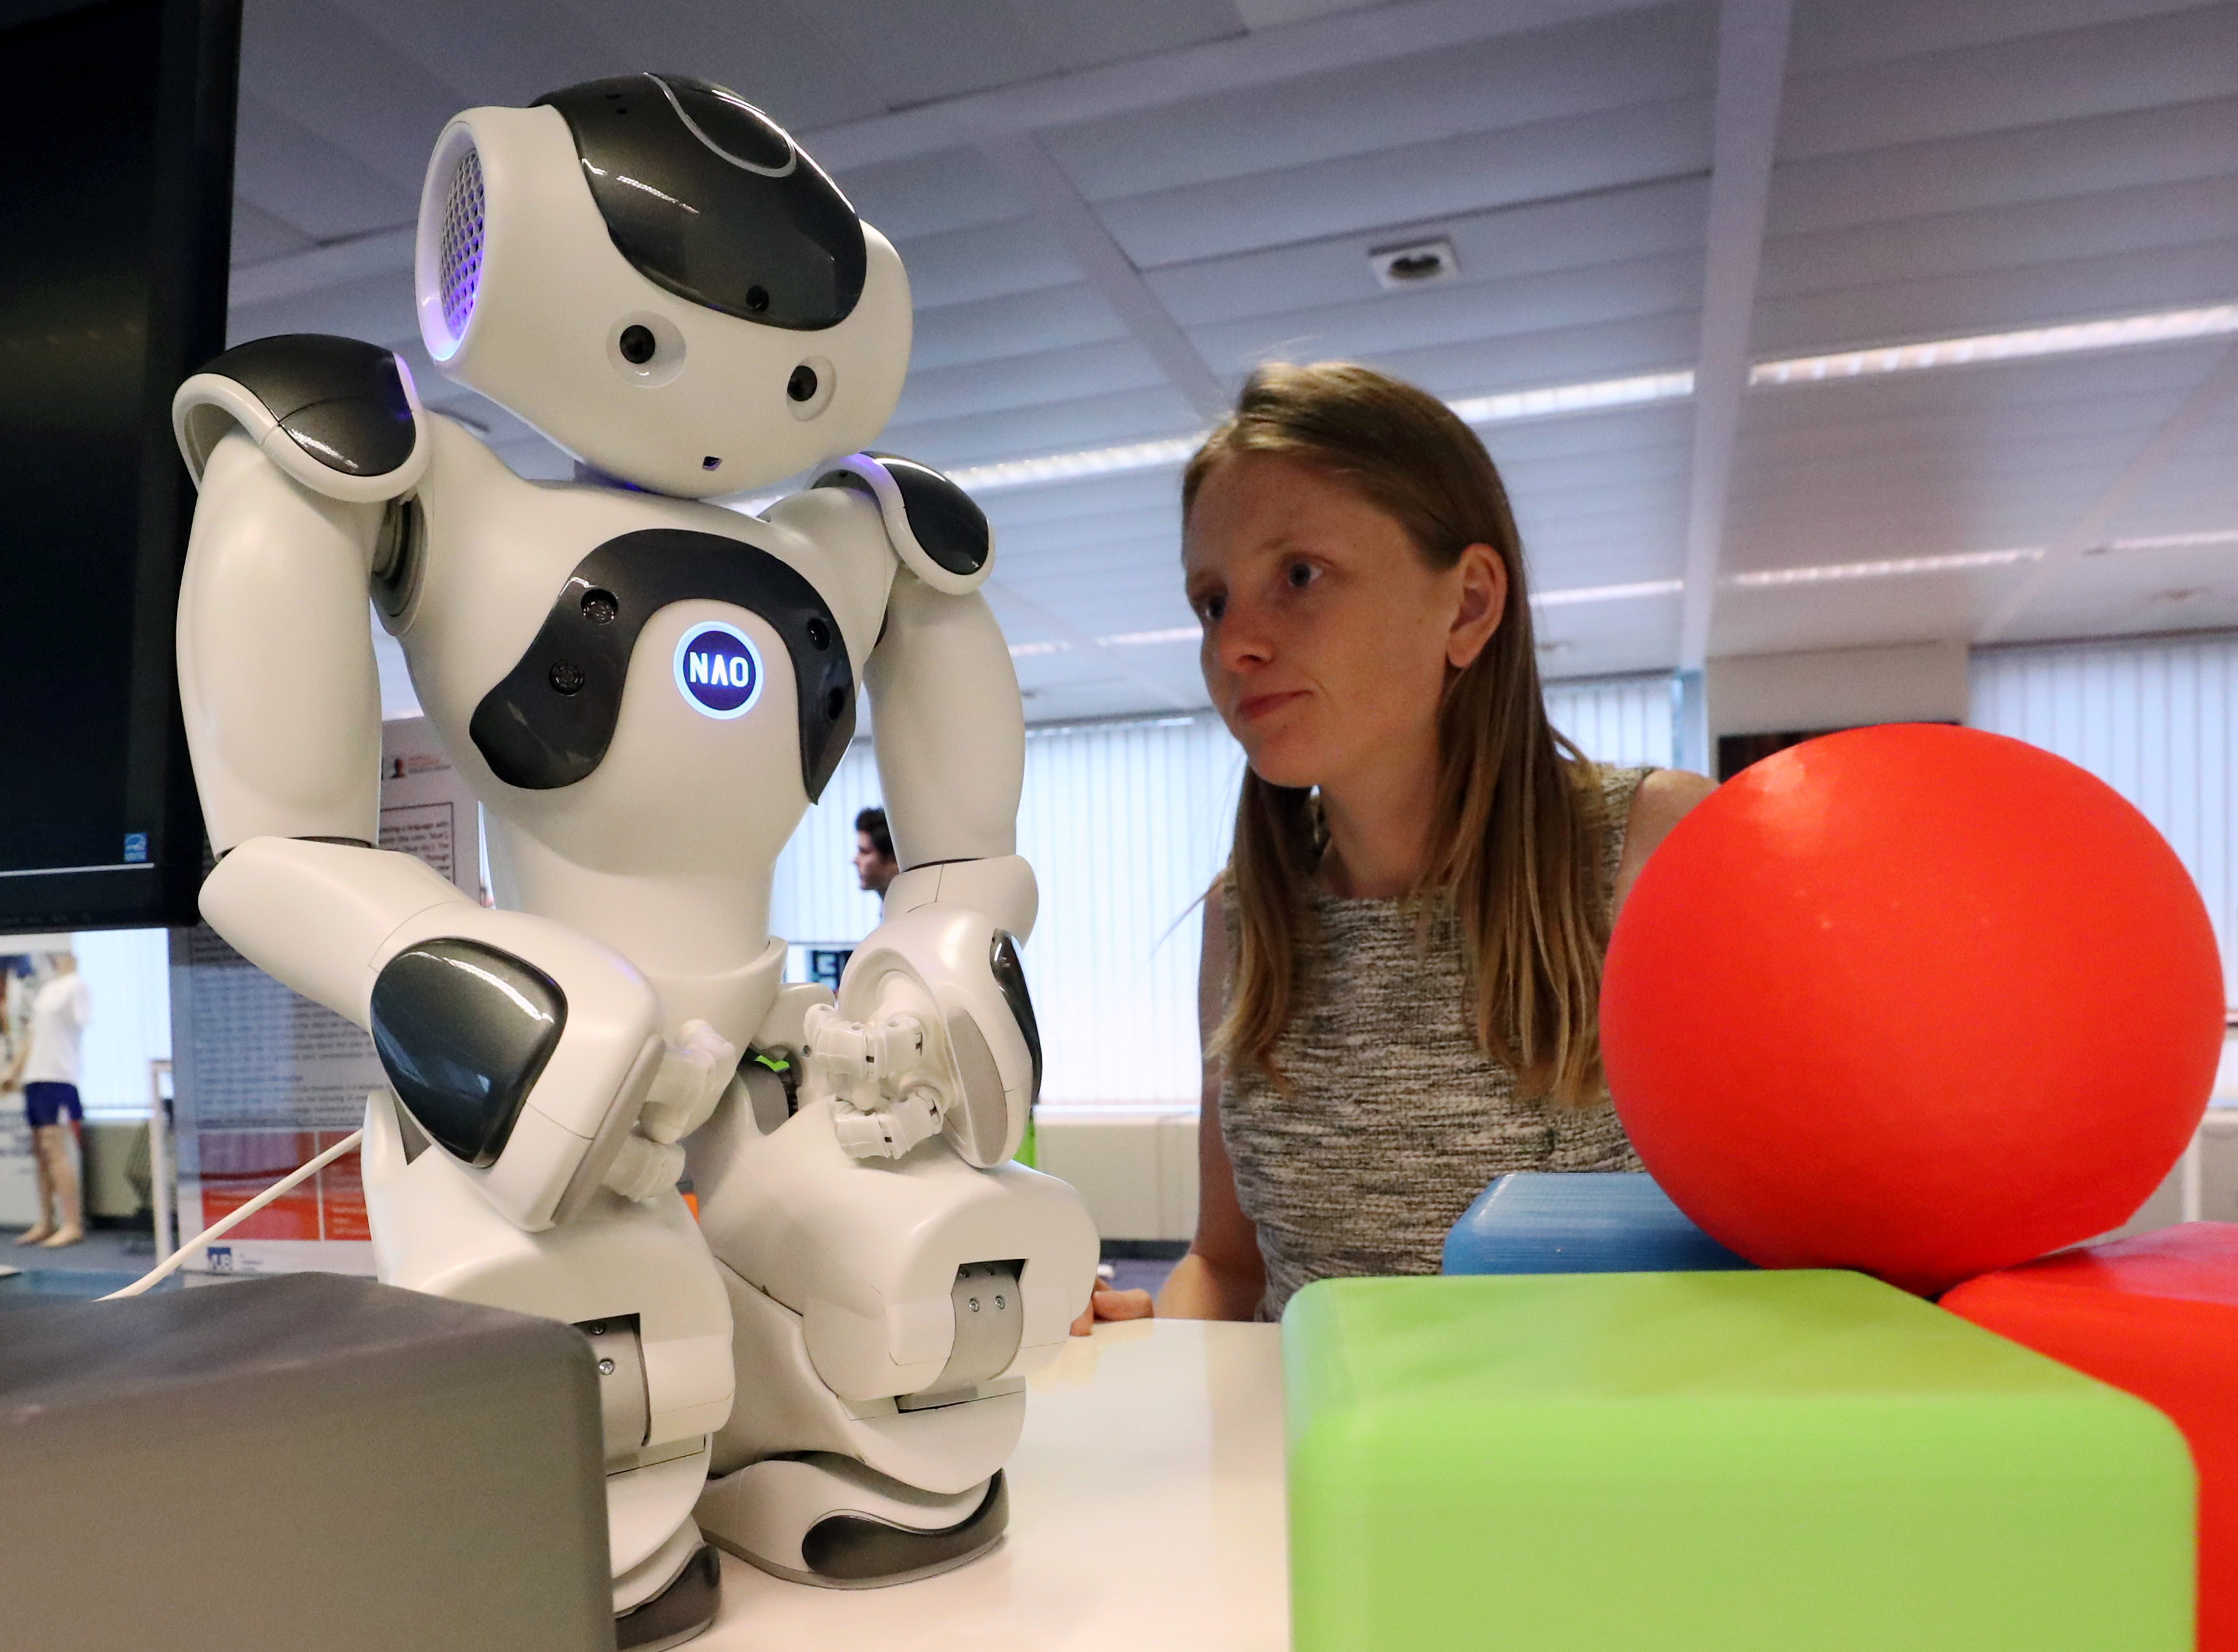 Marjon Blondeel, AI R&D developer, looks at a robot equipped with artificial Intelligence at the AI Xperience Center at the VUB (Vrije Universiteit Brussel) in Brussels, Belgium February 19, 2020.  REUTERS/Yves Herman